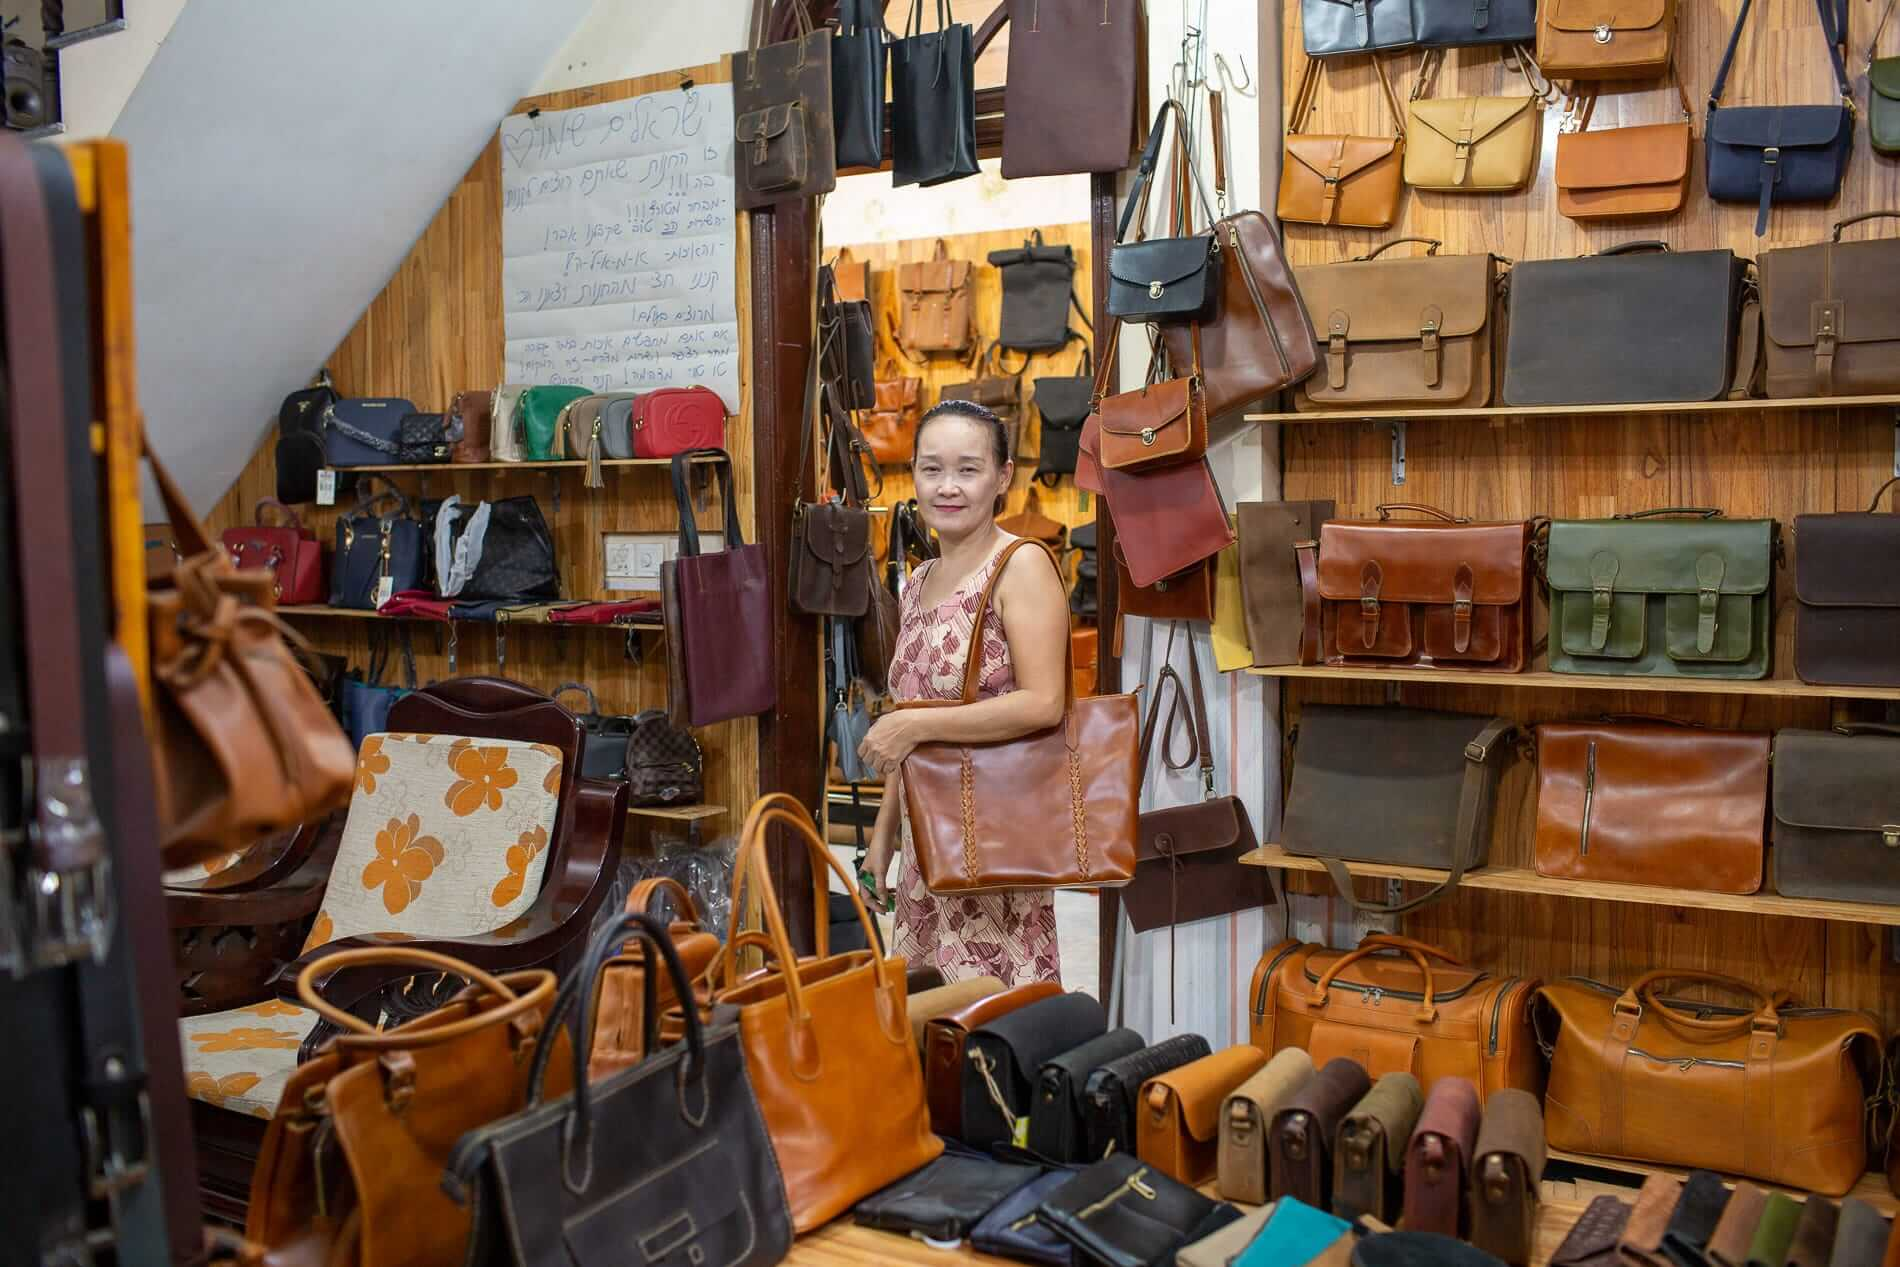 Le Phan Leather shop owner Titu